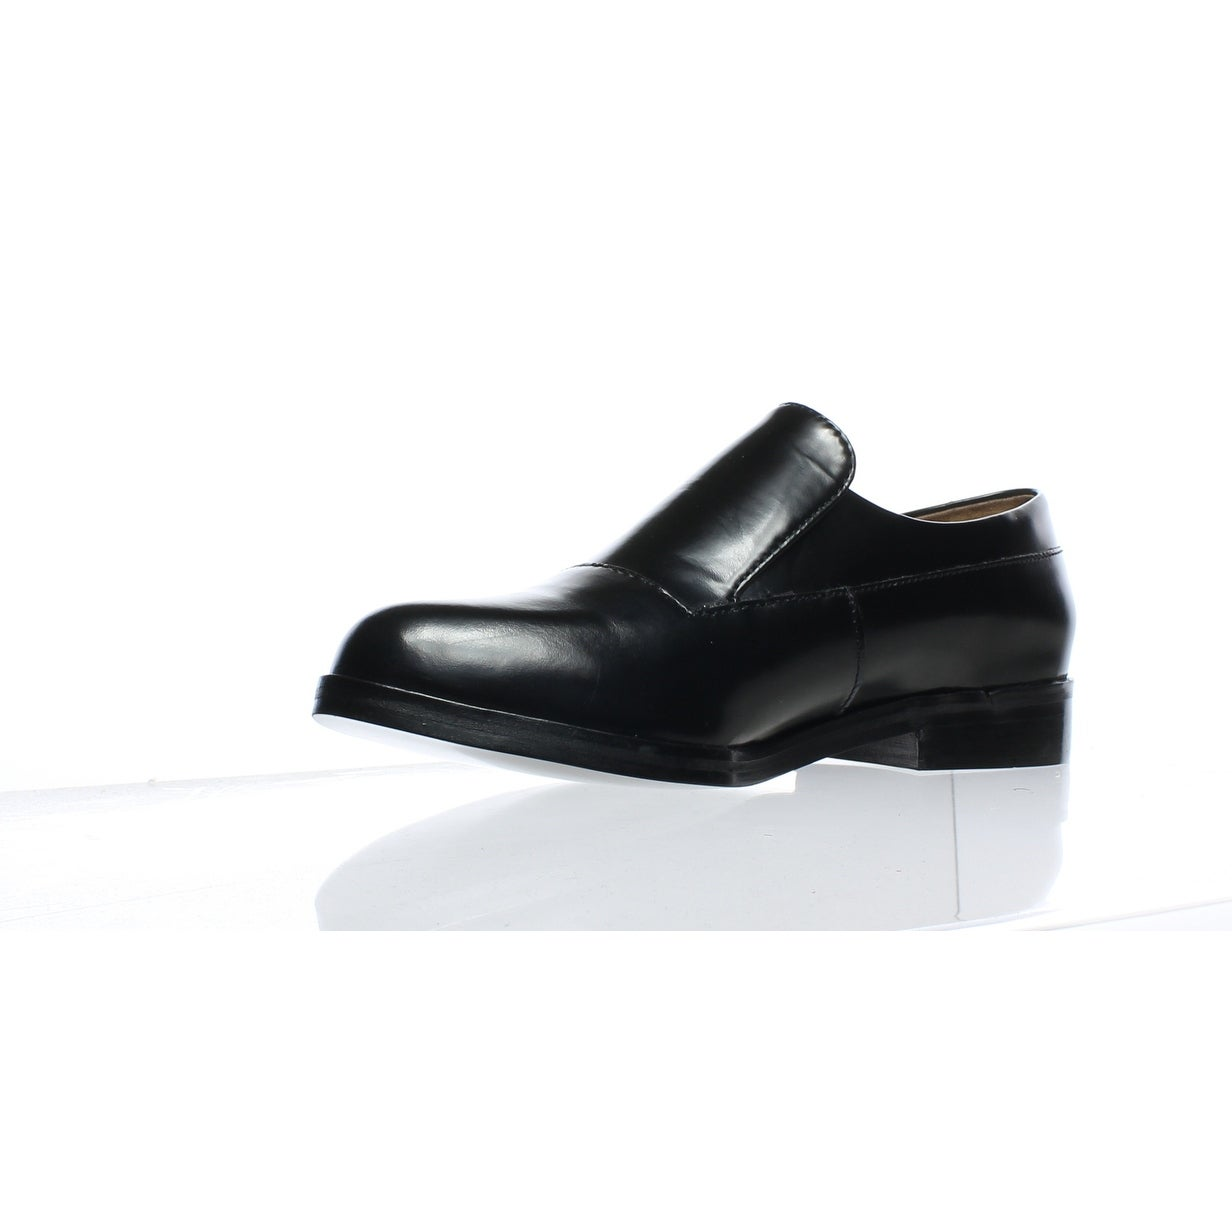 4d1a9bc6efb Shop Seychelles Womens Sunstone Black Loafers Size 6 - On Sale - Free  Shipping On Orders Over  45 - Overstock - 25627010